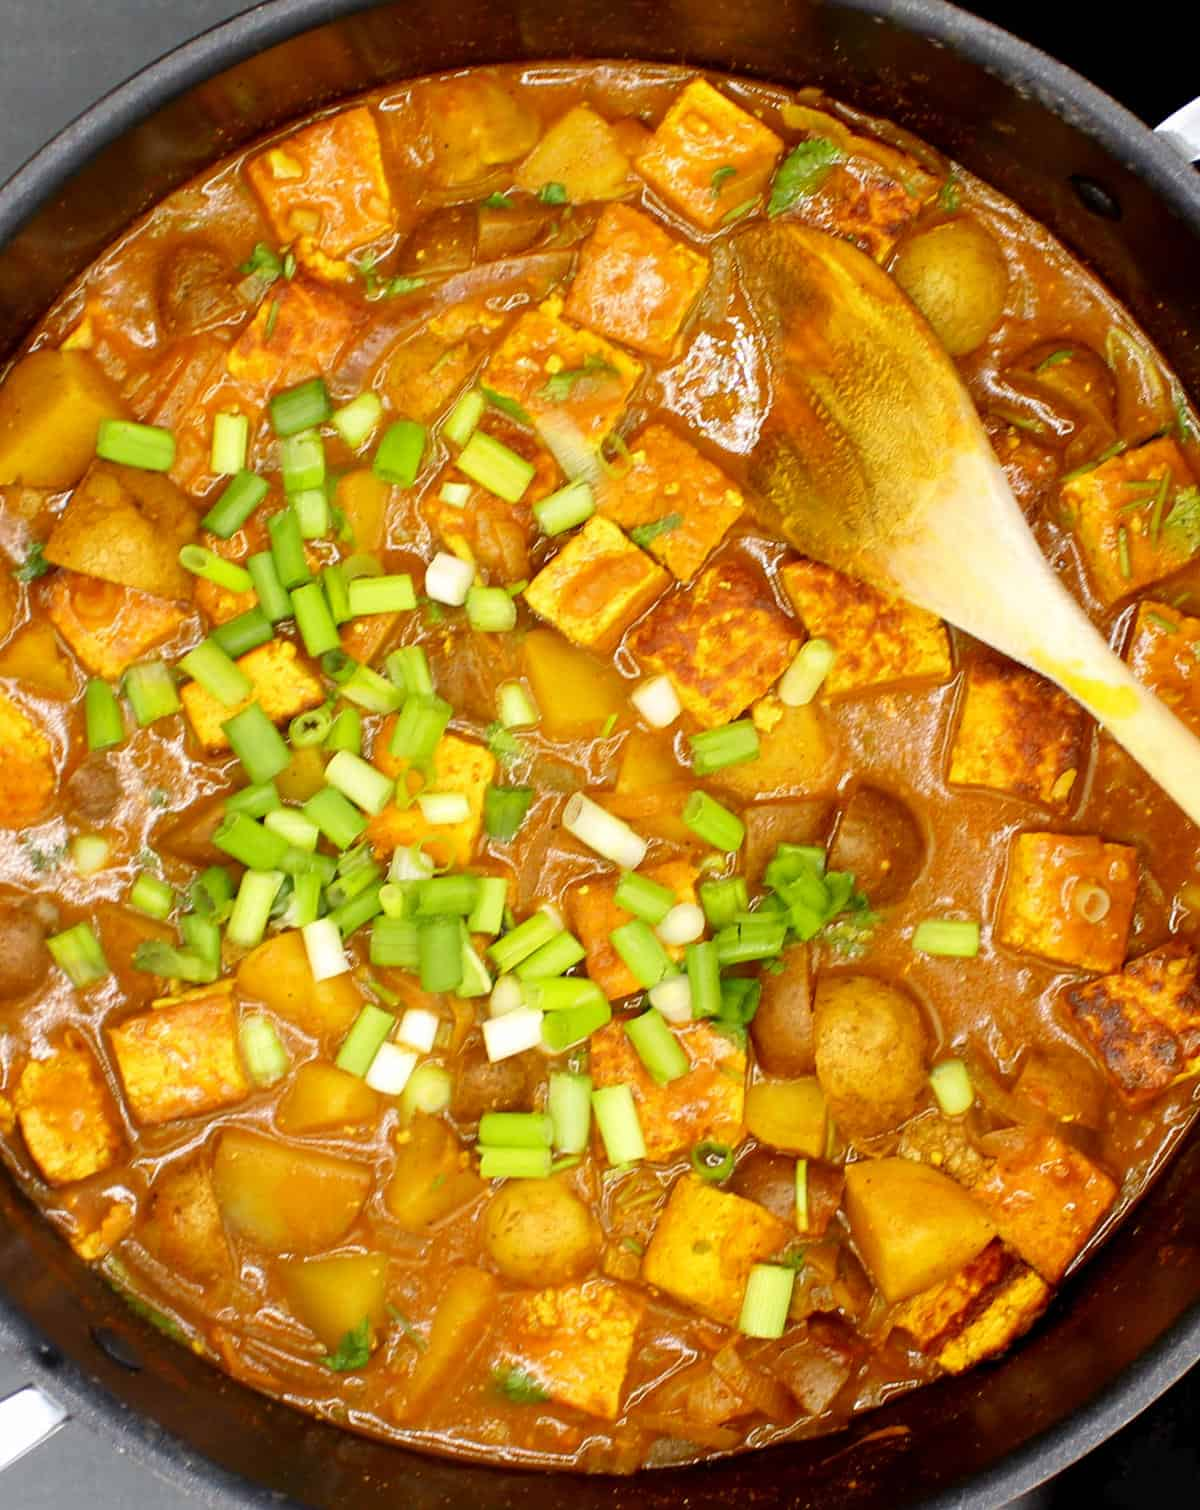 Jamaican Curry with tofu and potatoes in a black saucepan with a wooden ladle and scallions.